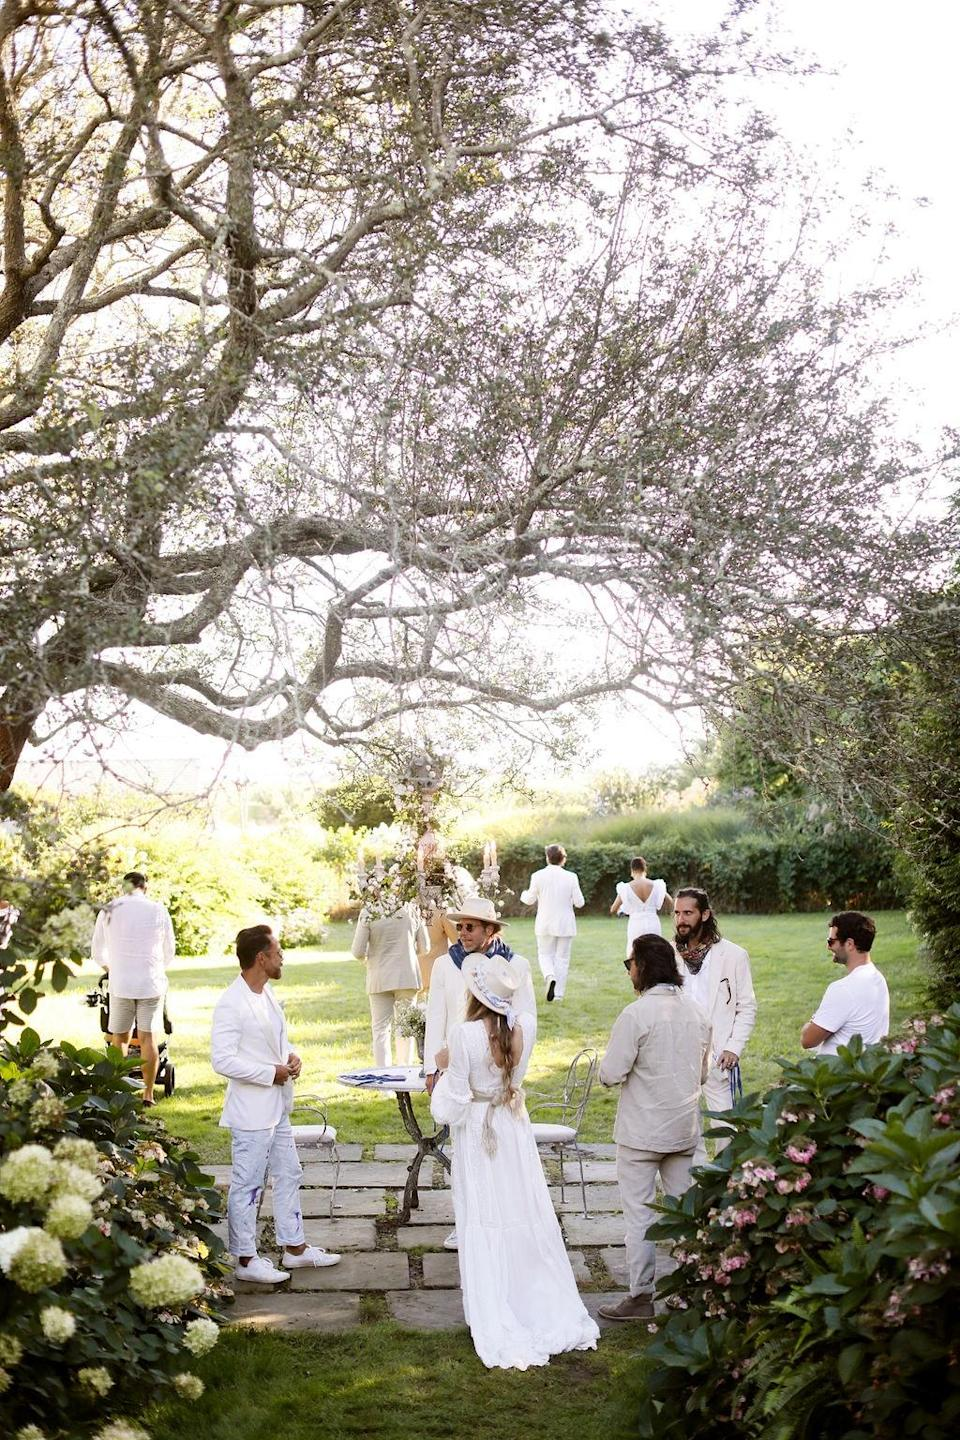 """""""One of my favorite spots is under this turn of the century pear tree that shades the pool off to the left,"""" Dean says. """"We hung an antique chandelier from one of the limbs centered over an iron French marble table where guests were able to pick up handmade <a href=""""https://www.instagram.com/campisidro/?hl=en"""" rel=""""nofollow noopener"""" target=""""_blank"""" data-ylk=""""slk:Camp Isidro"""" class=""""link rapid-noclick-resp"""">Camp Isidro</a> indigo dyed linen masks."""""""